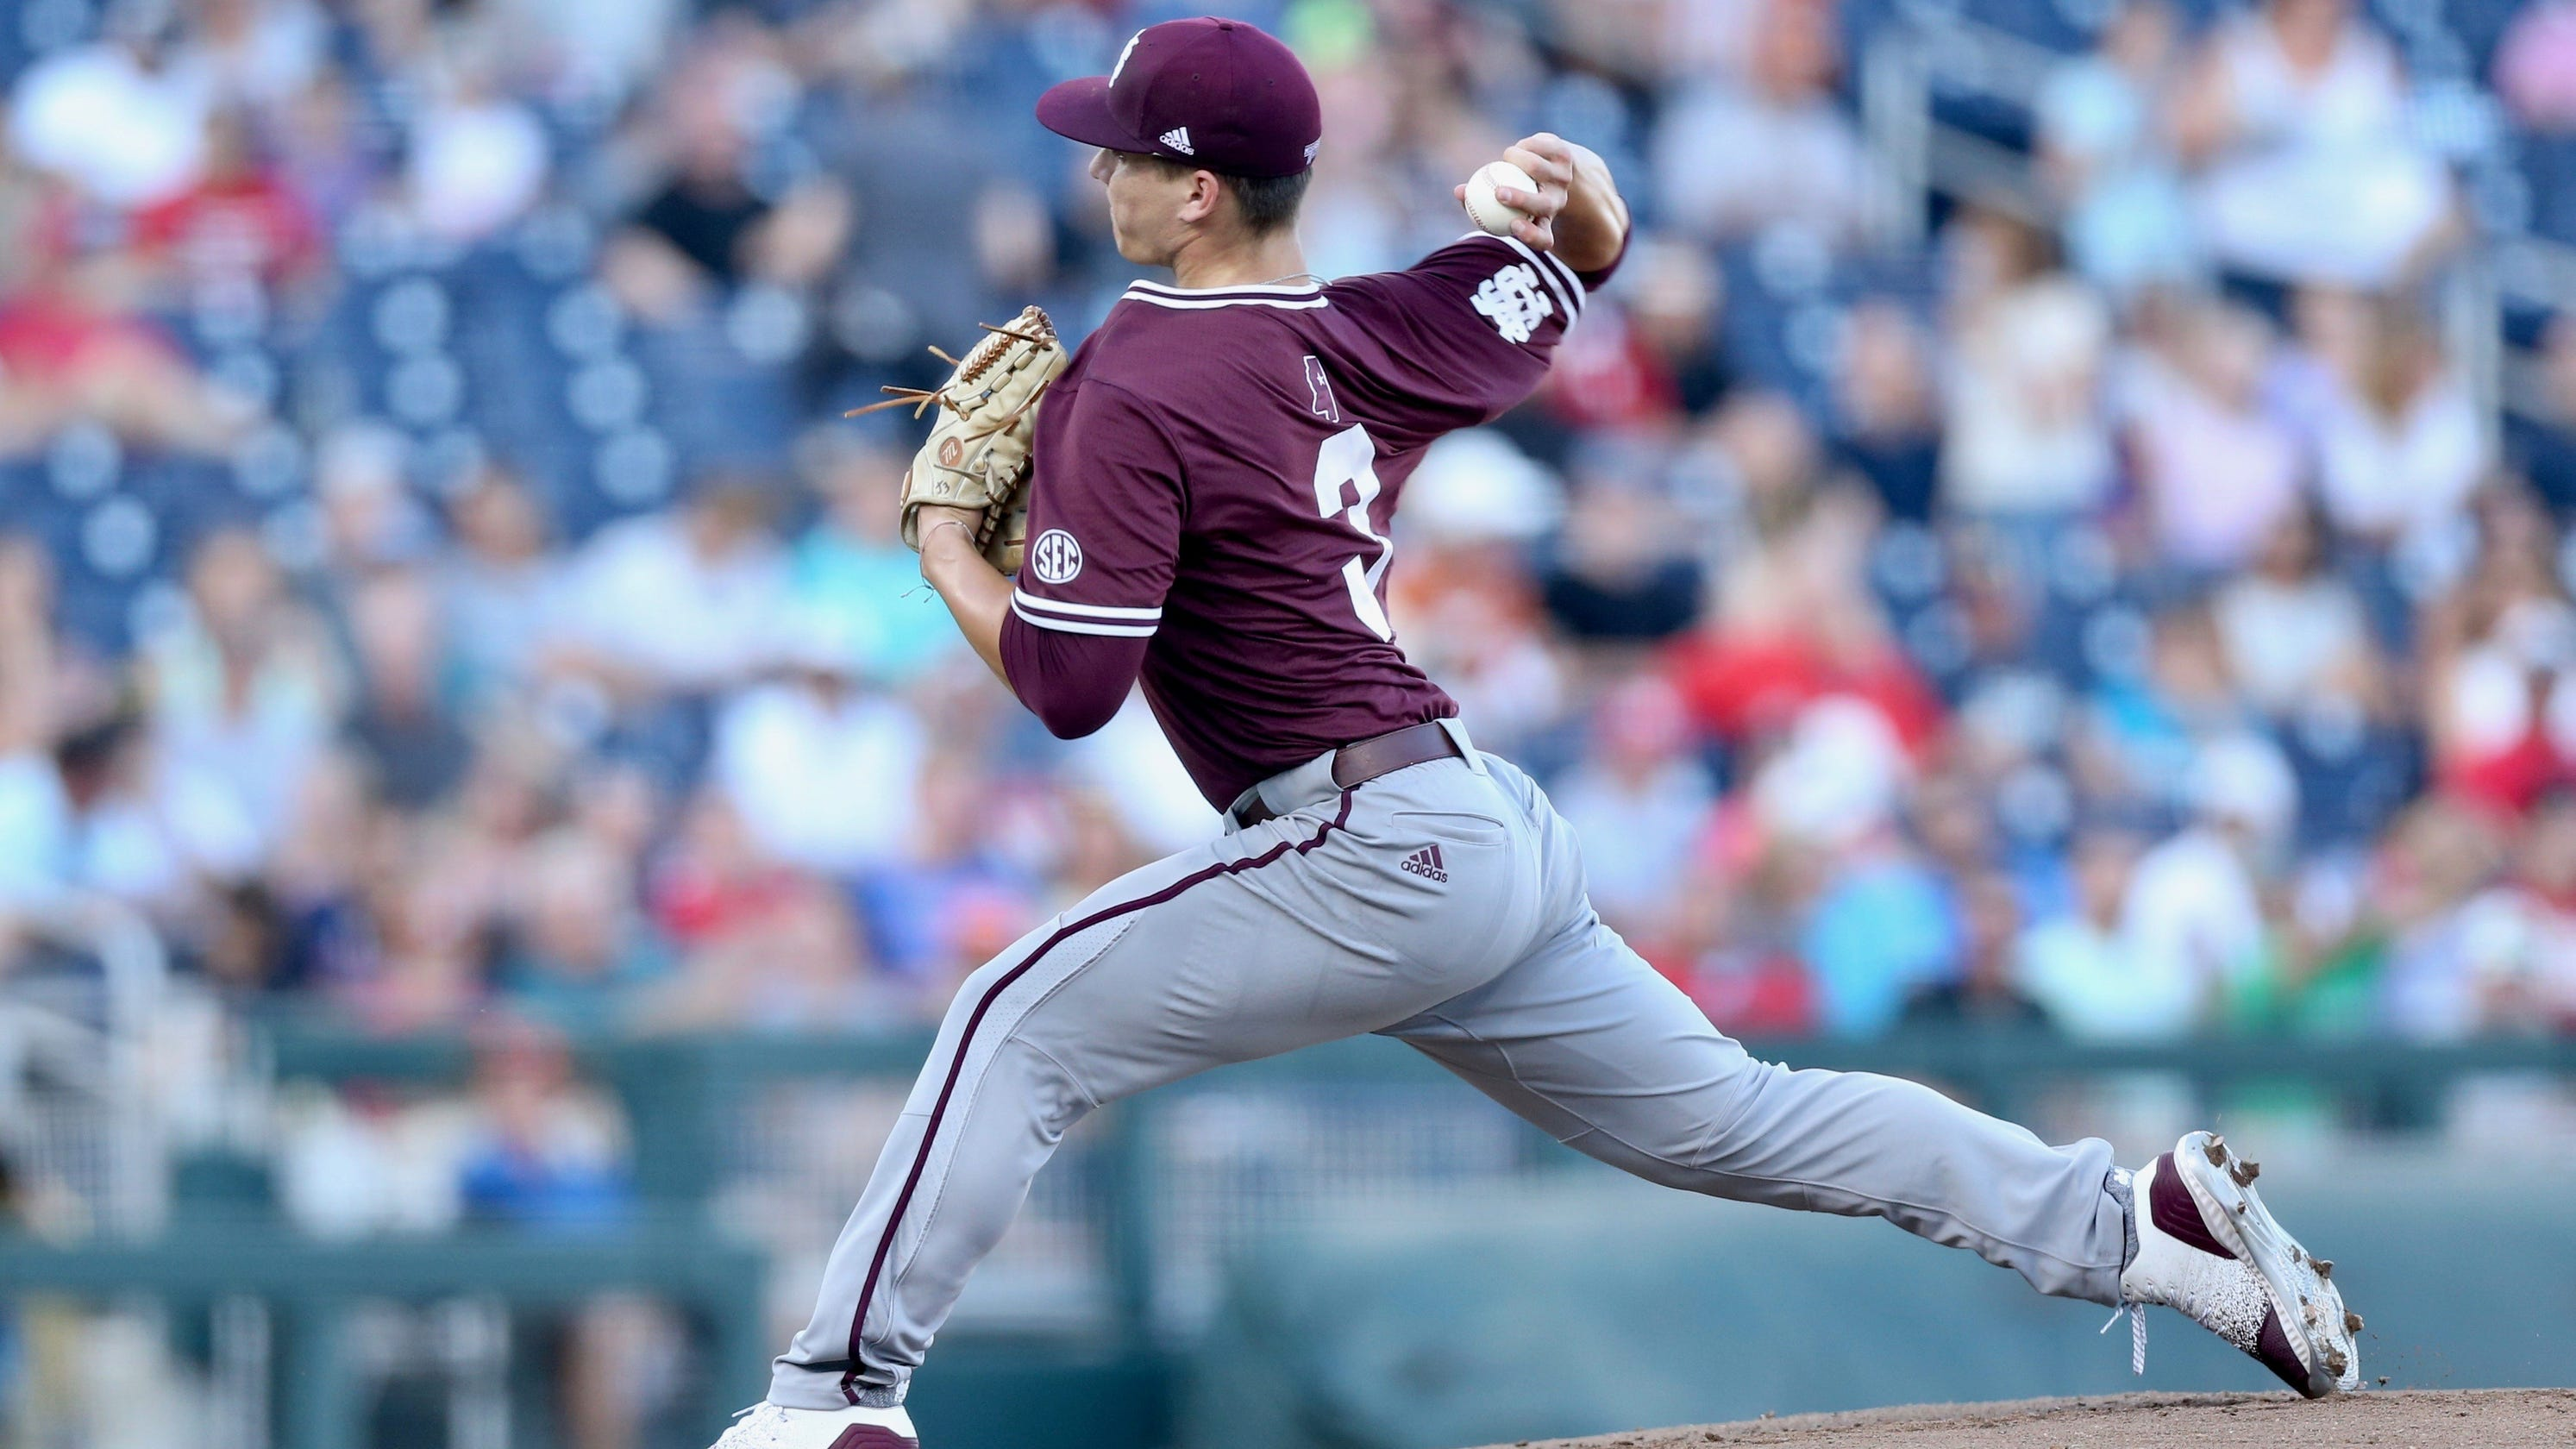 Why JT Ginn's College World Series start gives Mississippi State baseball hope for future